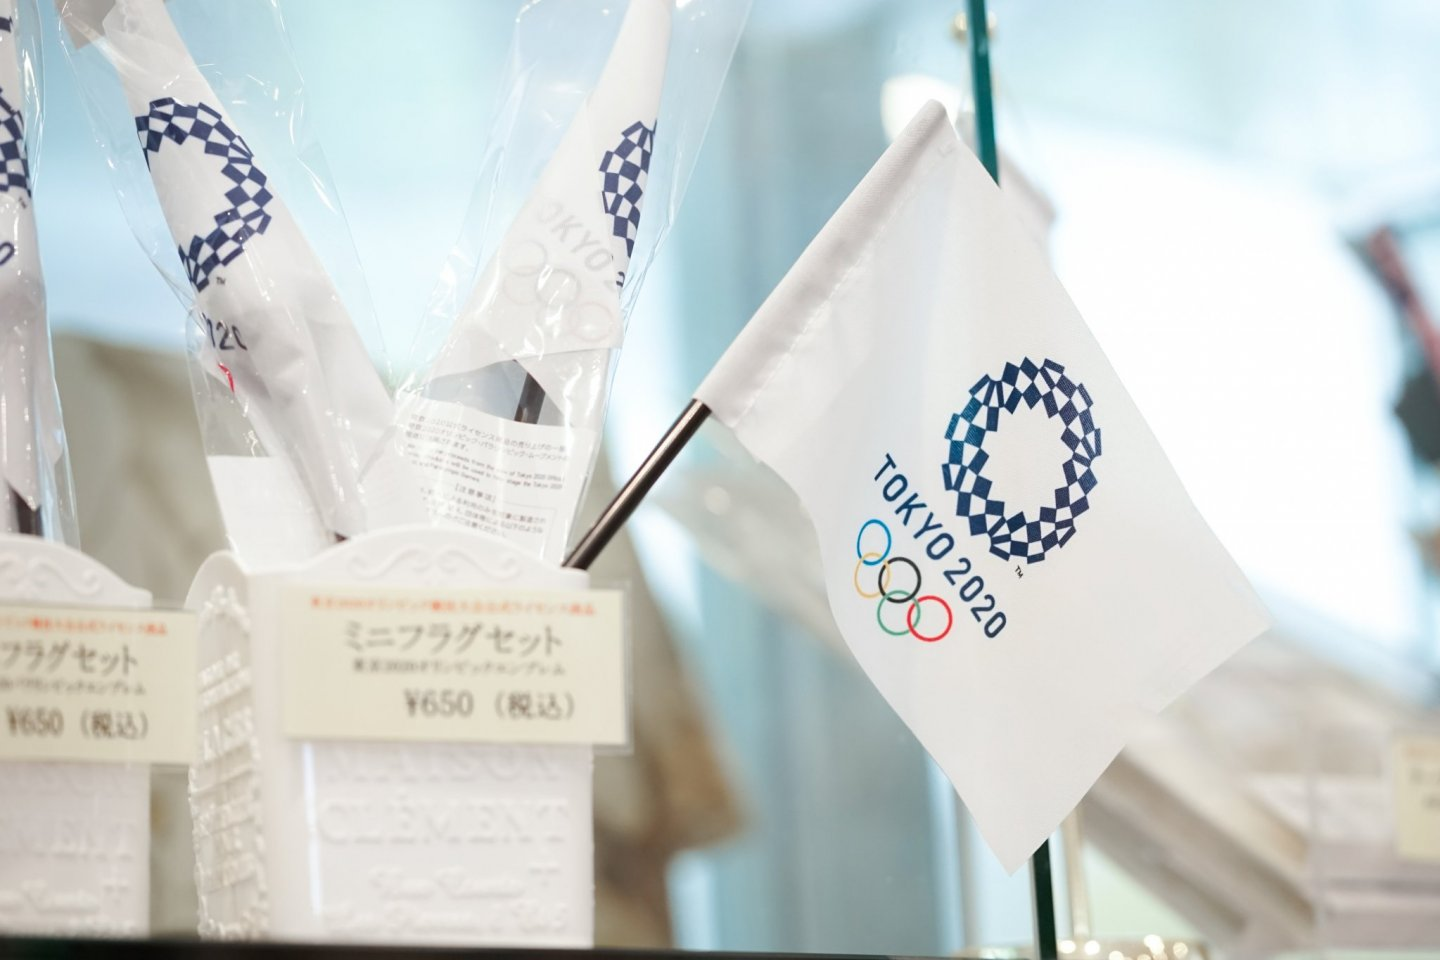 2020 Olympics Events.Tokyo 2020 Summer Olympics 2020 July August Events In